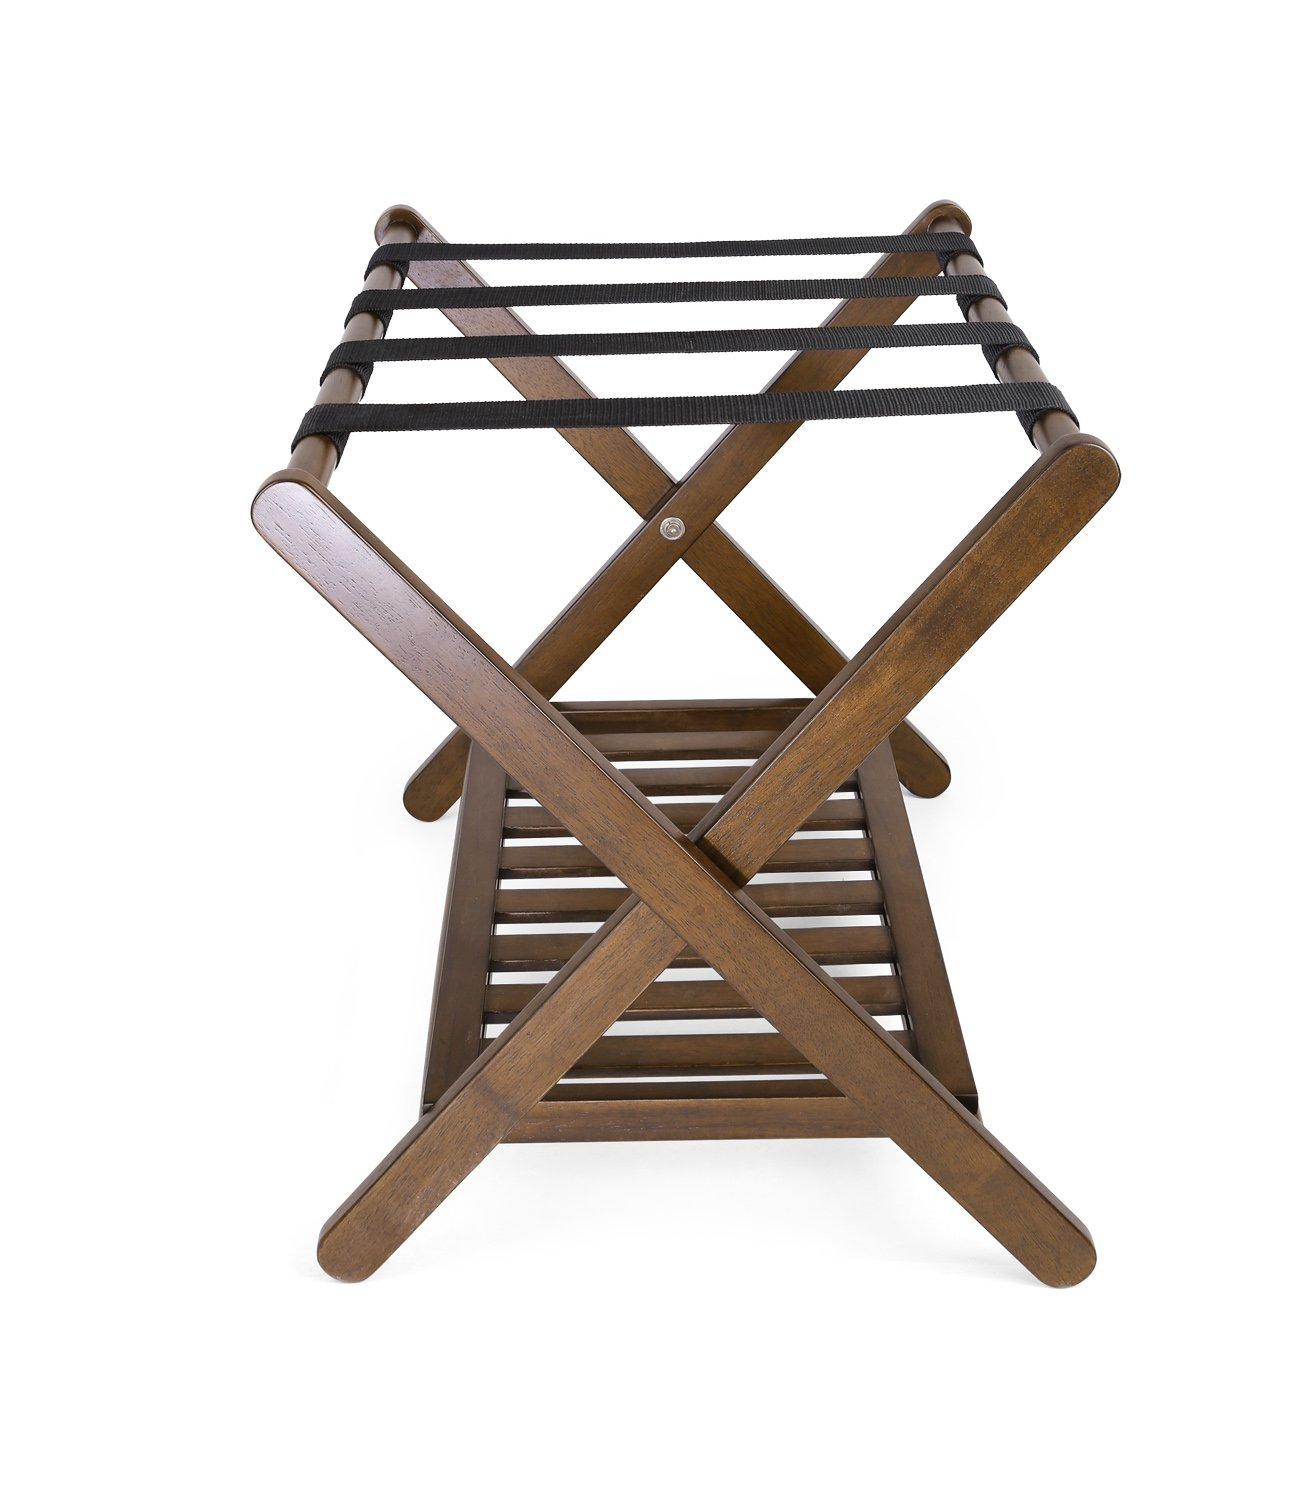 Classic Dining Chair in Solid Hardwood Foldable for Easy Transport Easy Tool-less Assembly Brown Wood Furniture for Living Room /& Office Penguin Home Espresso W47 x D54 x H91 cm